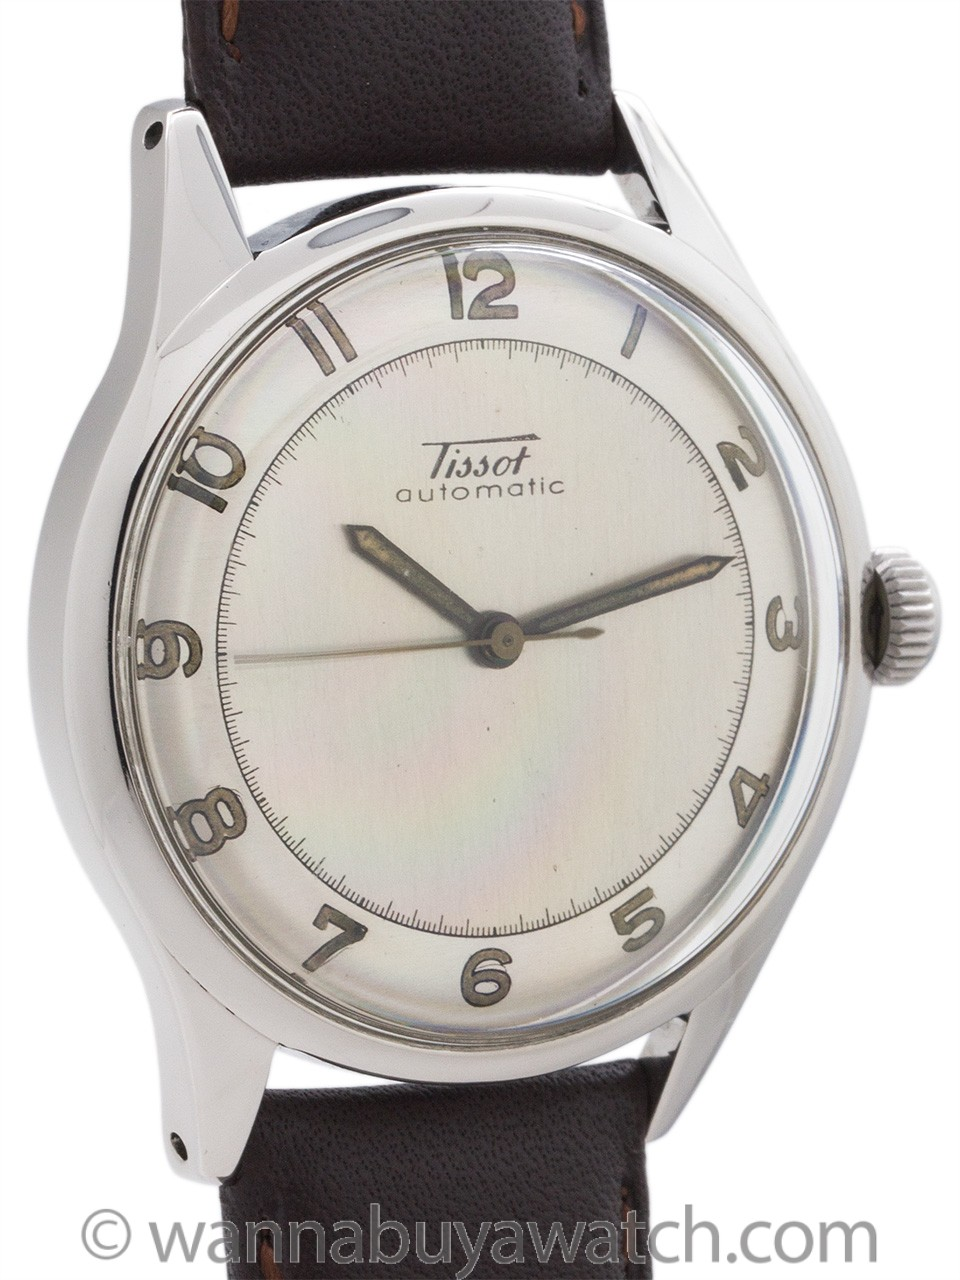 Tissot Automatic Stainless Steel circa 1950's